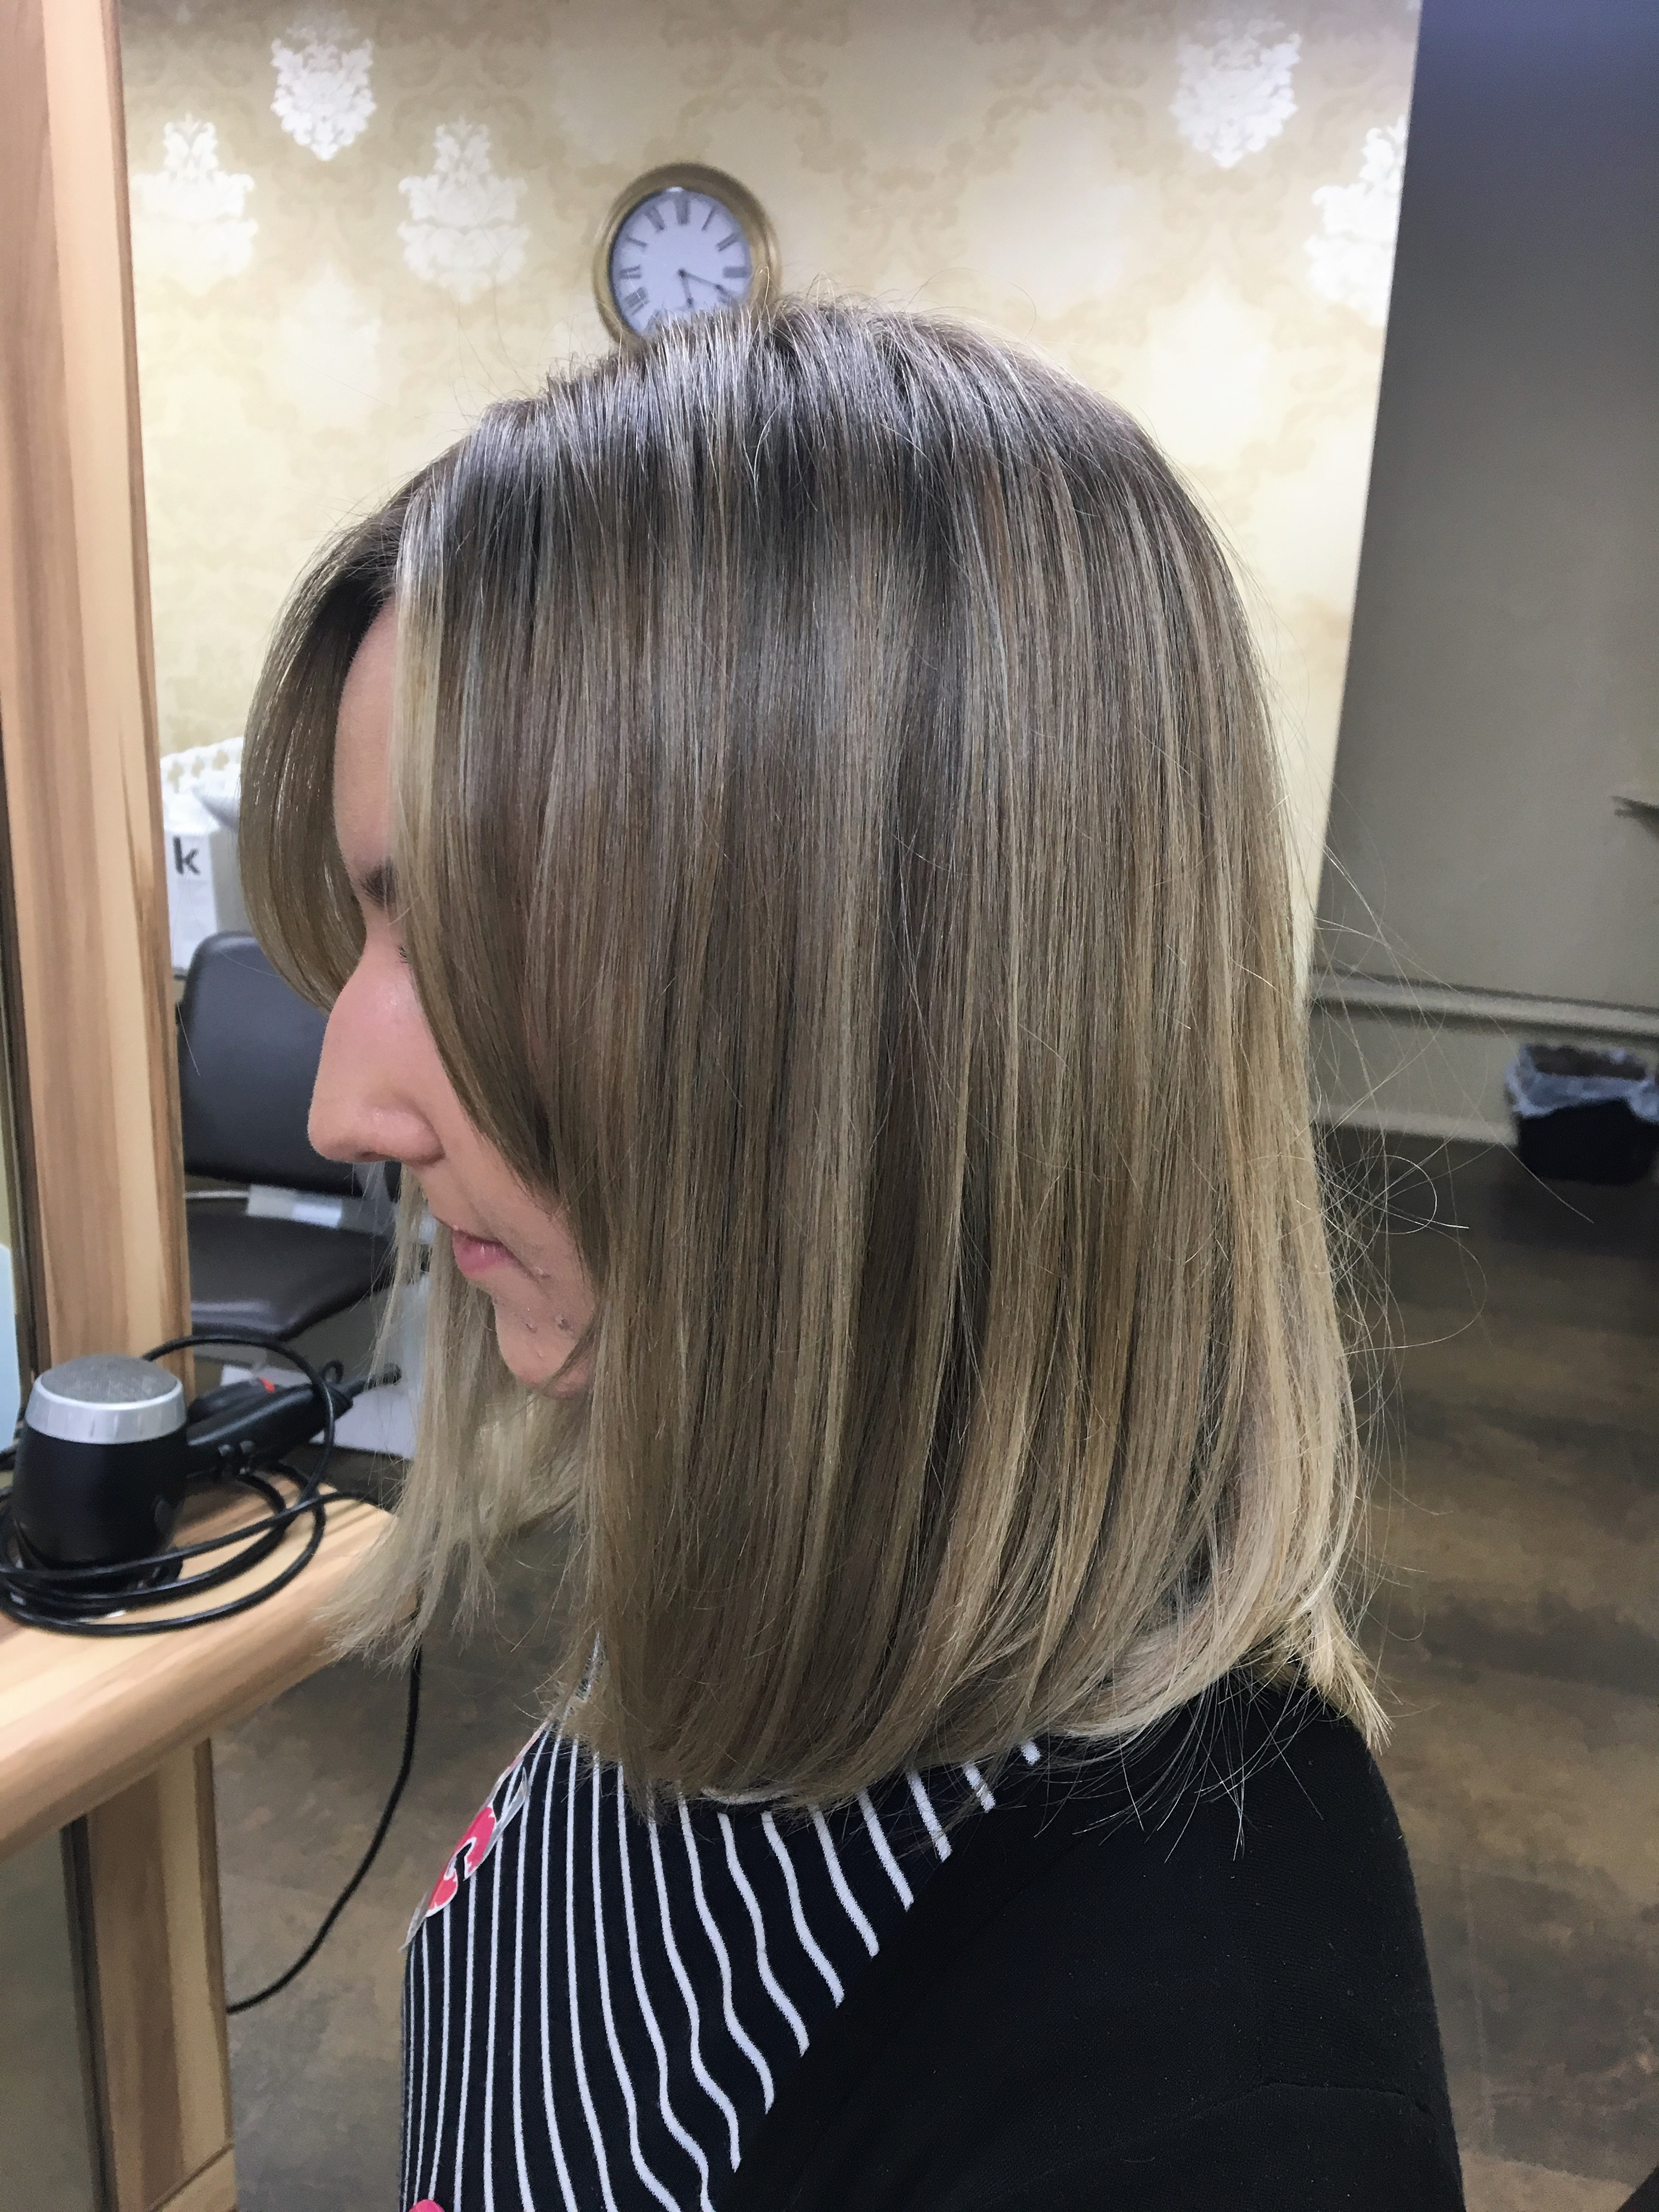 After - Natural but slightly smokey root smudge with a beige toner on existing highlights